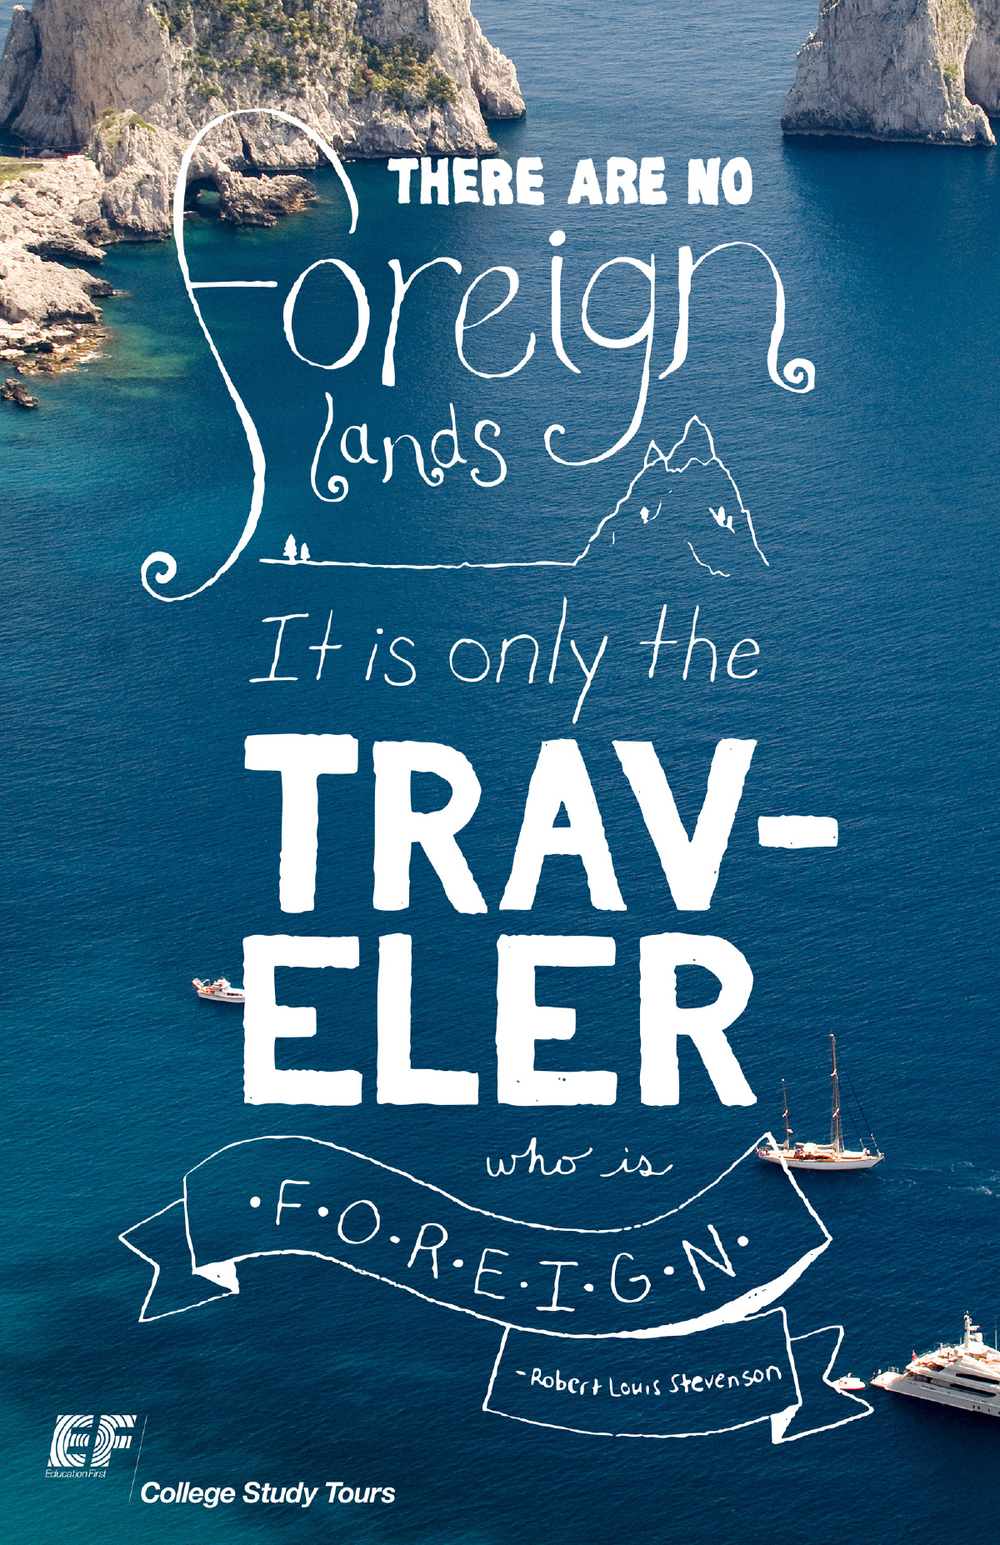 jeannettewiley_travelposters_quotes_5.jpg